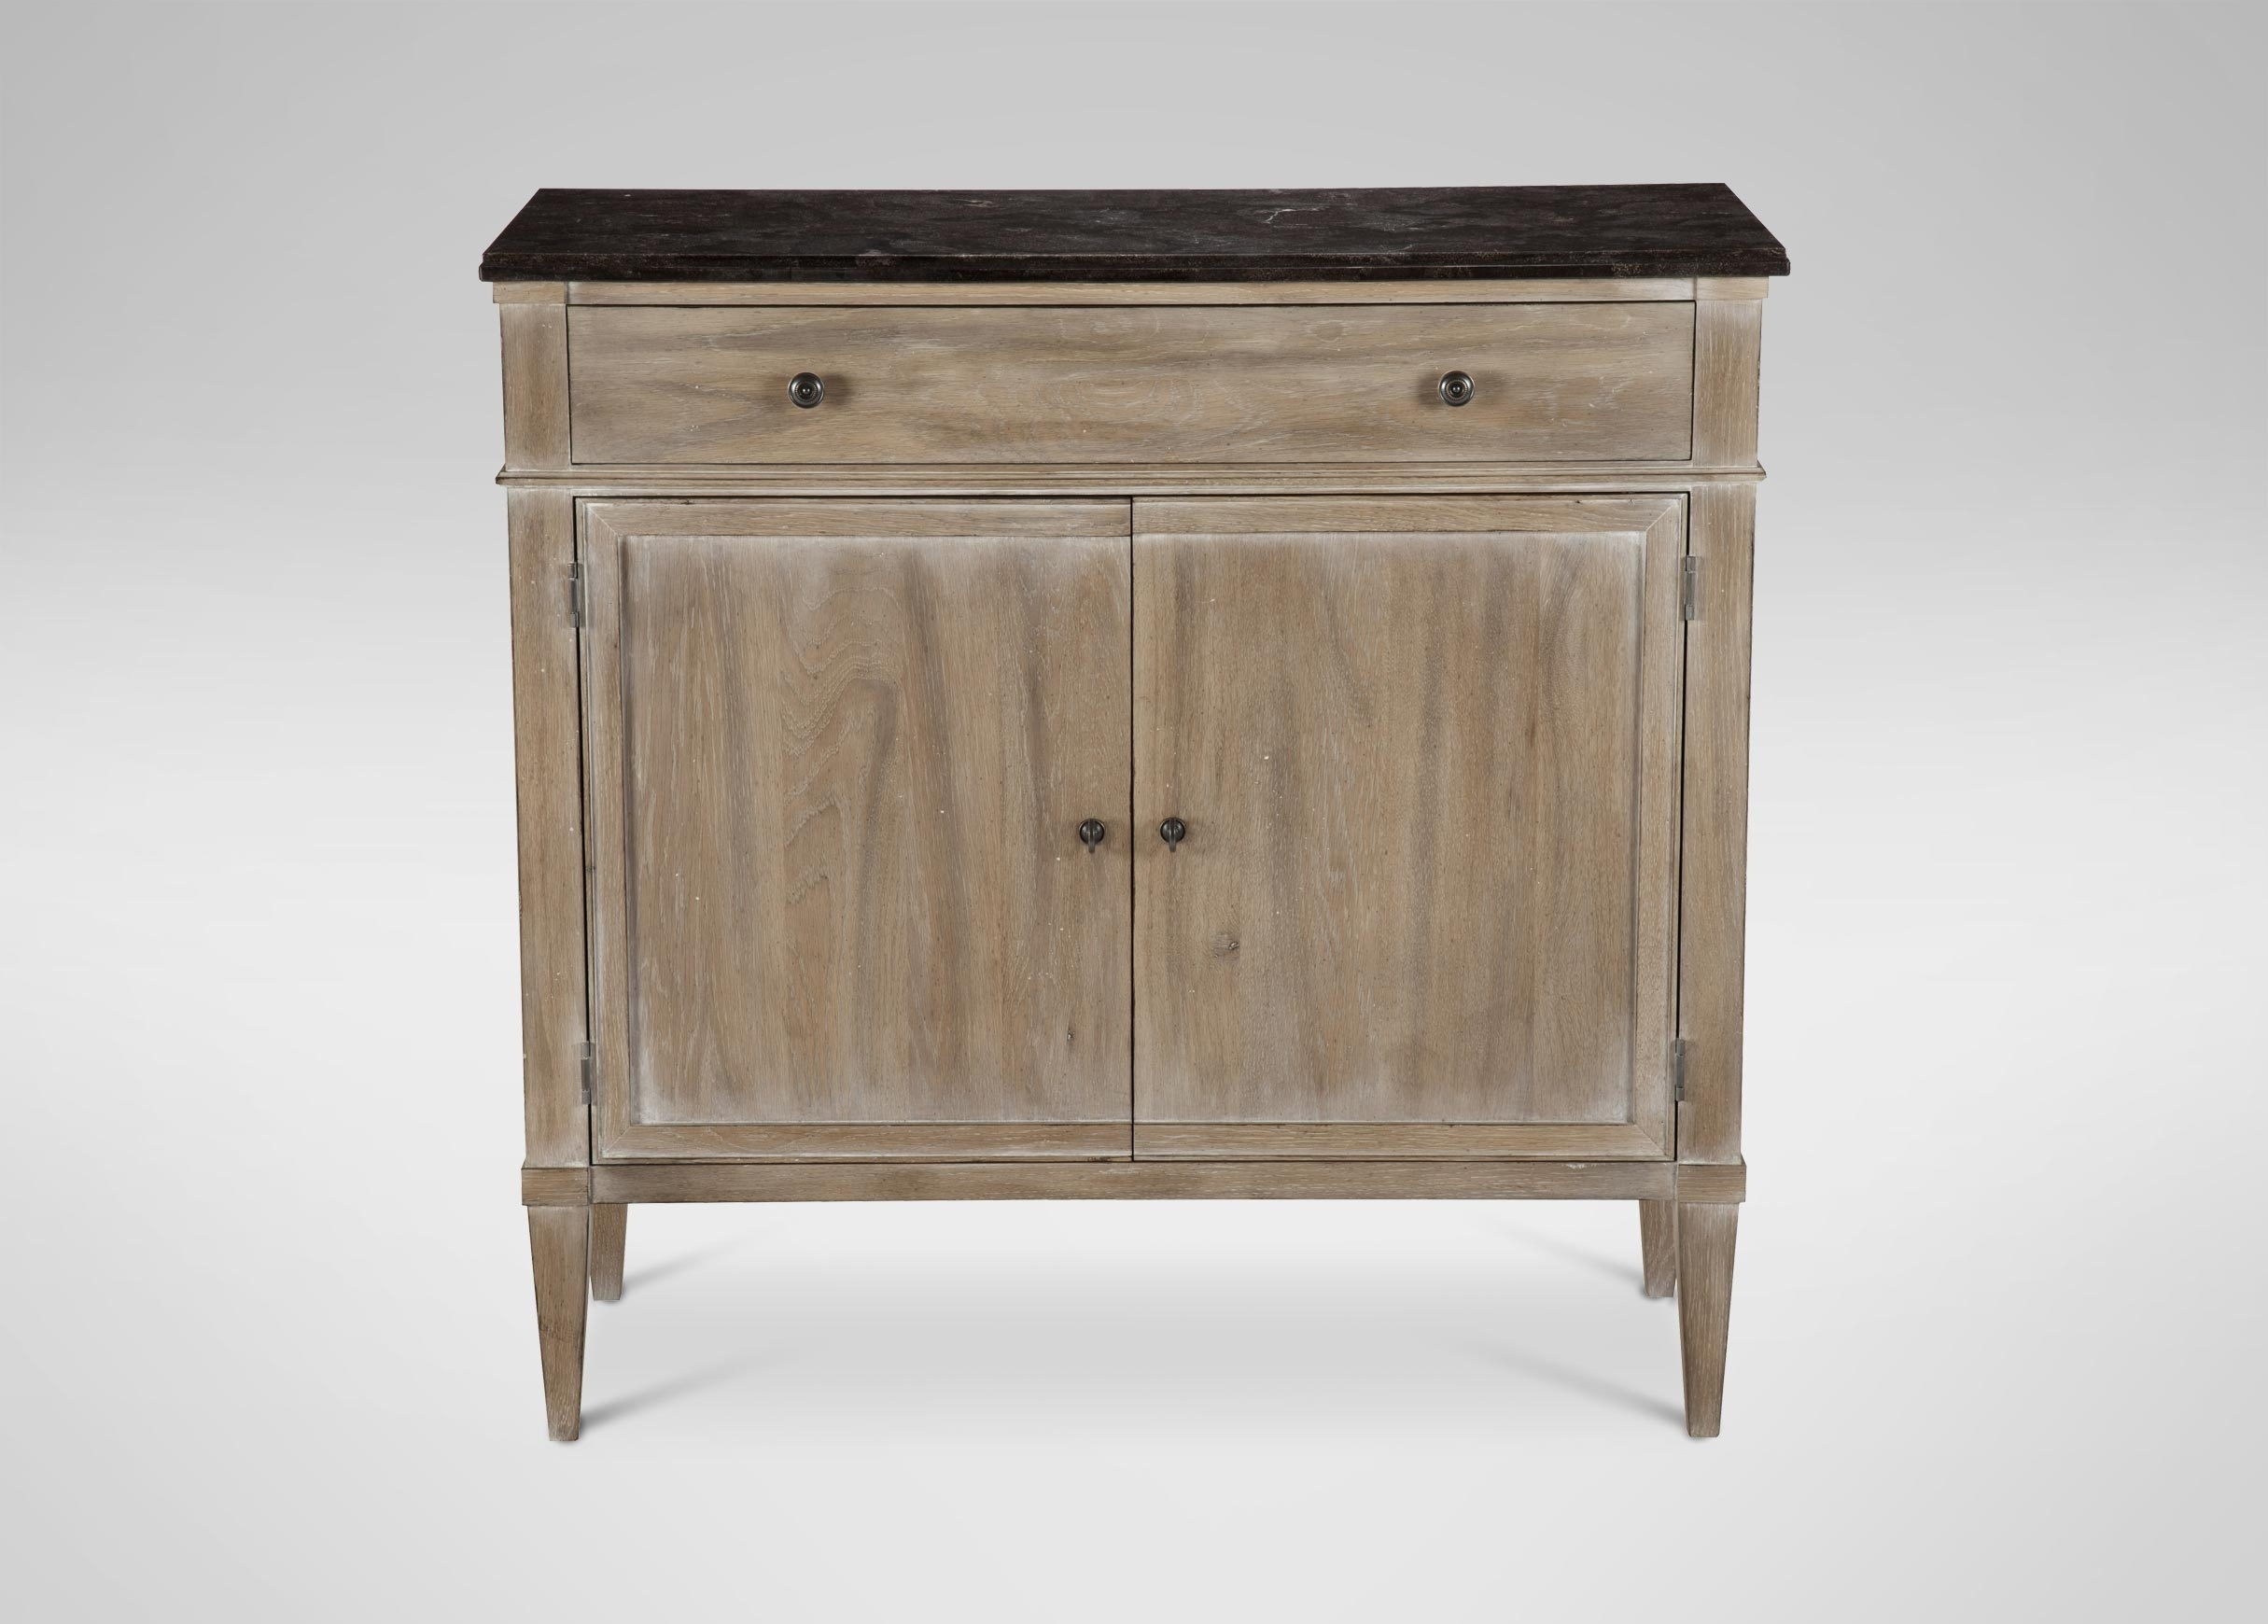 Shop Buffet Storage, Sideboards & Servers | Ethan Allen | Ethan Allen in Brown Wood 72 Inch Sideboards (Image 23 of 30)